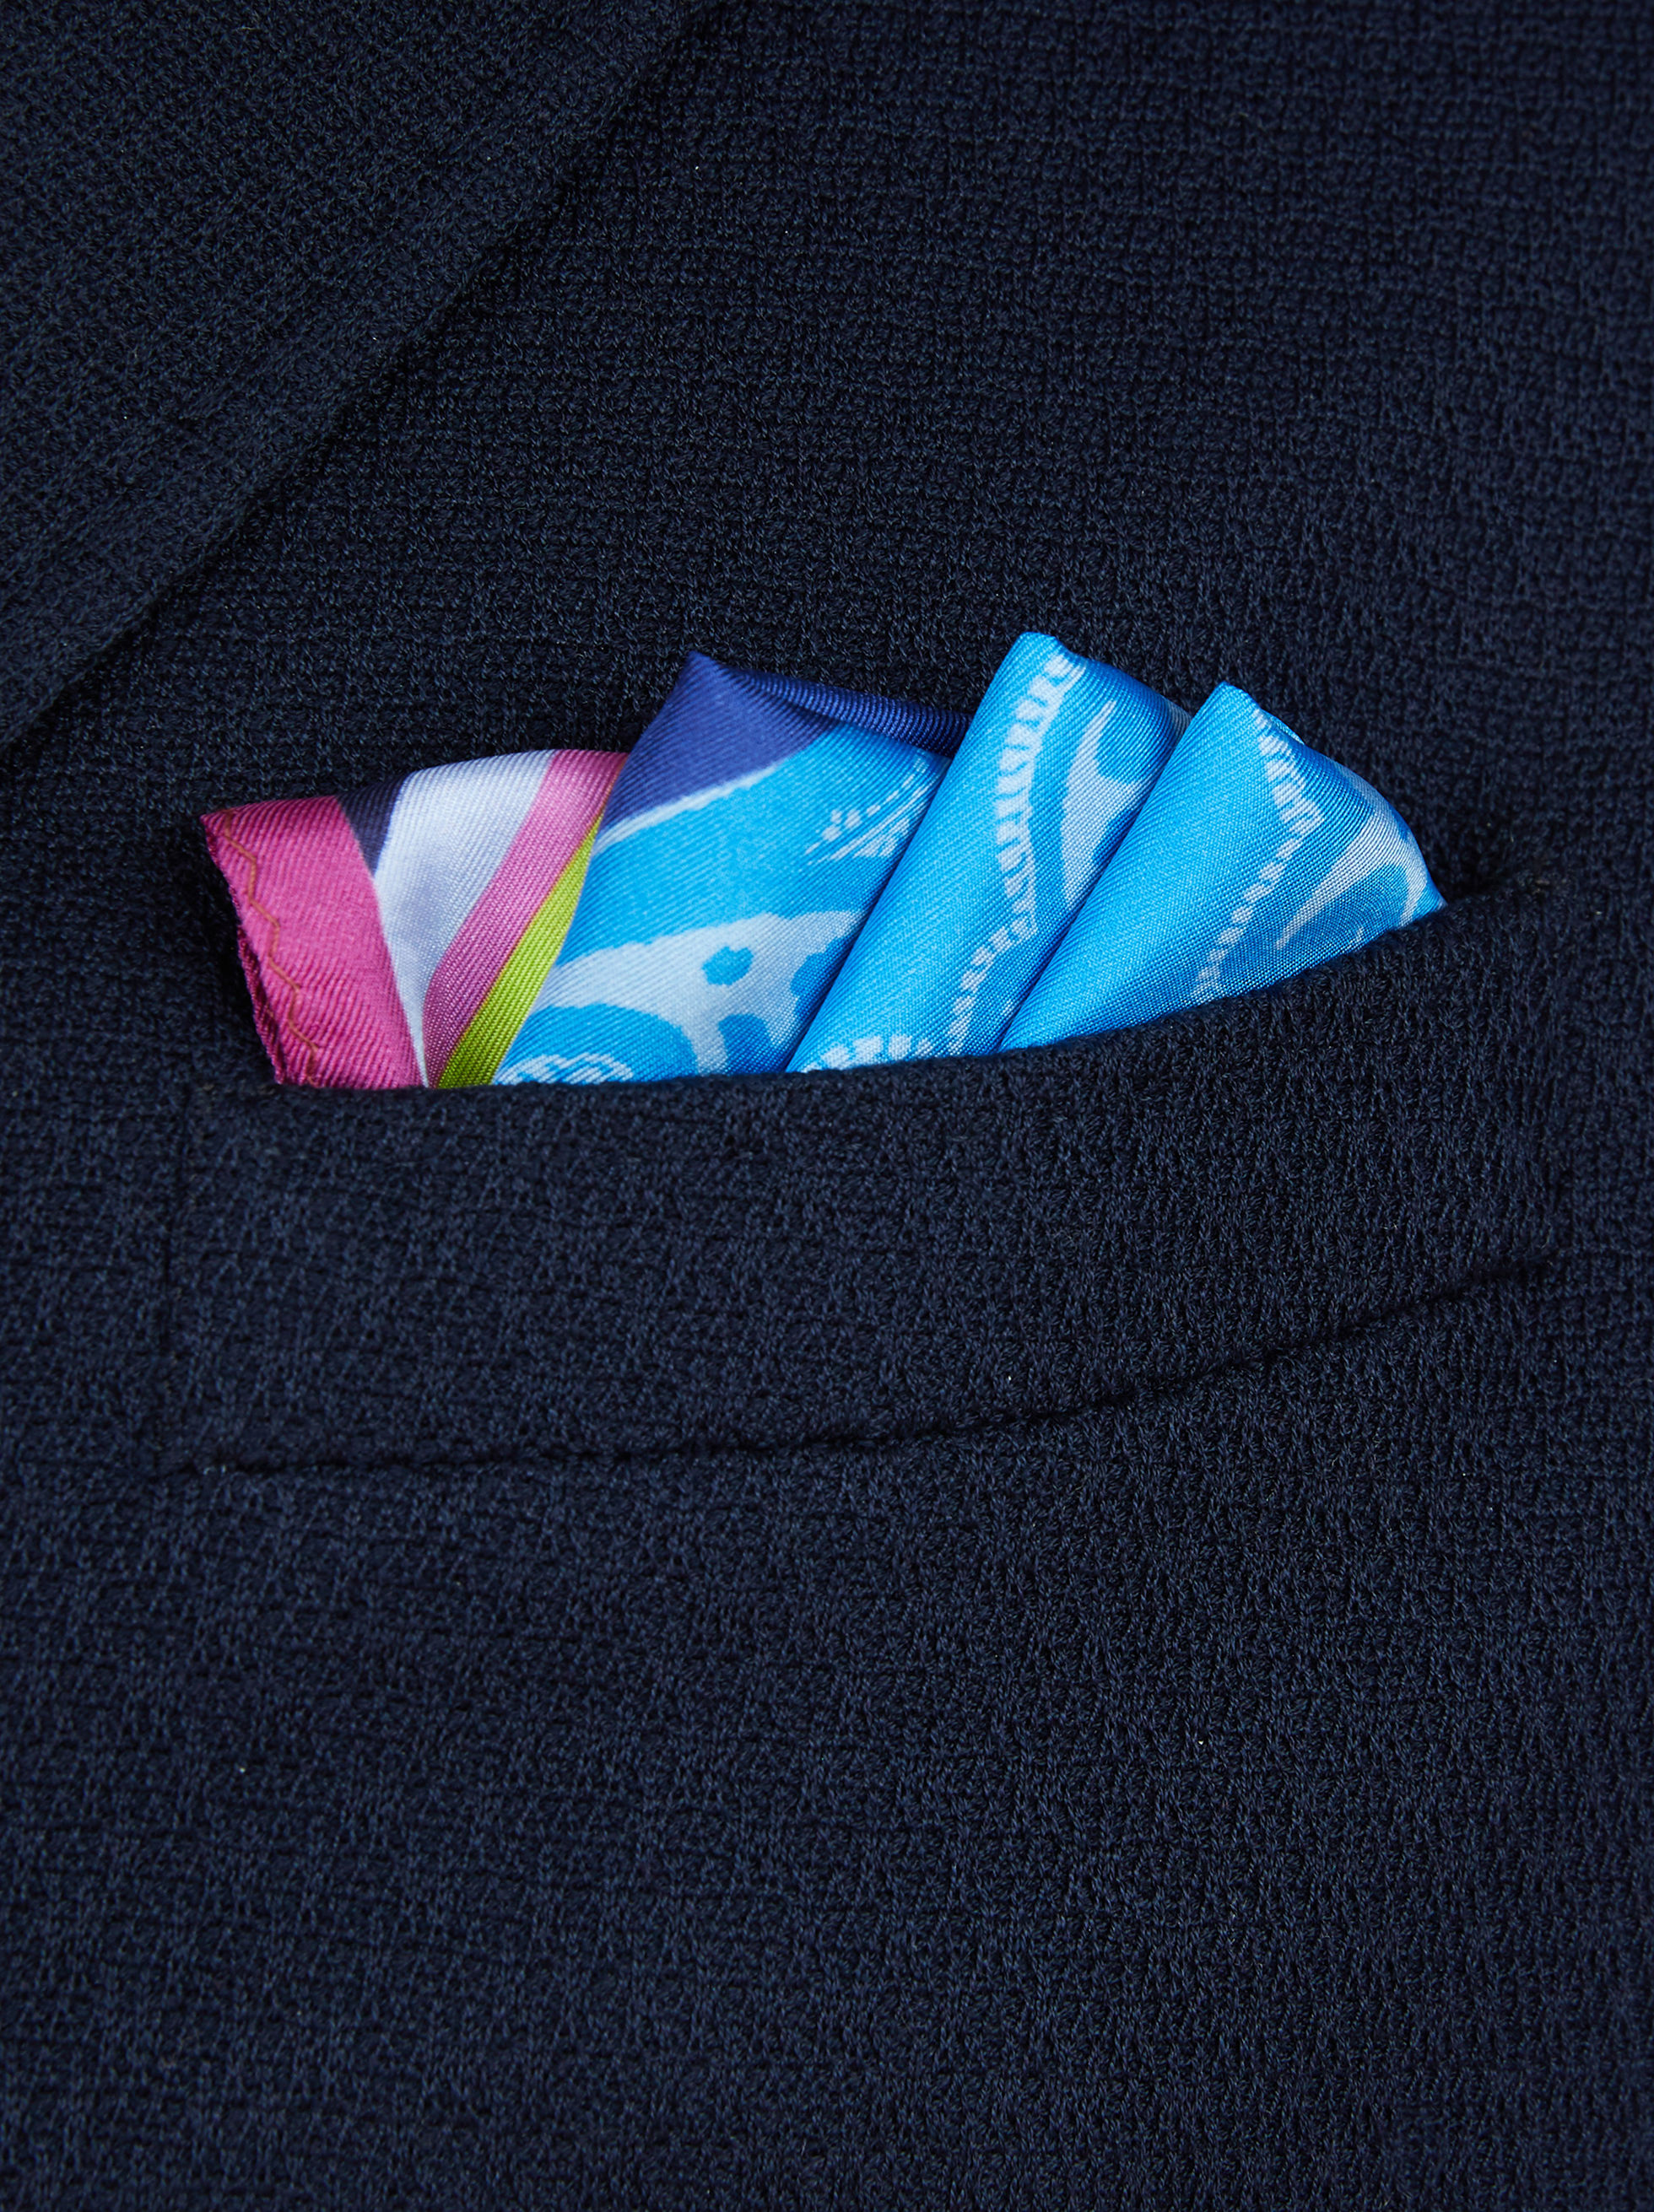 POCKET SQUARE WITH PEGASO